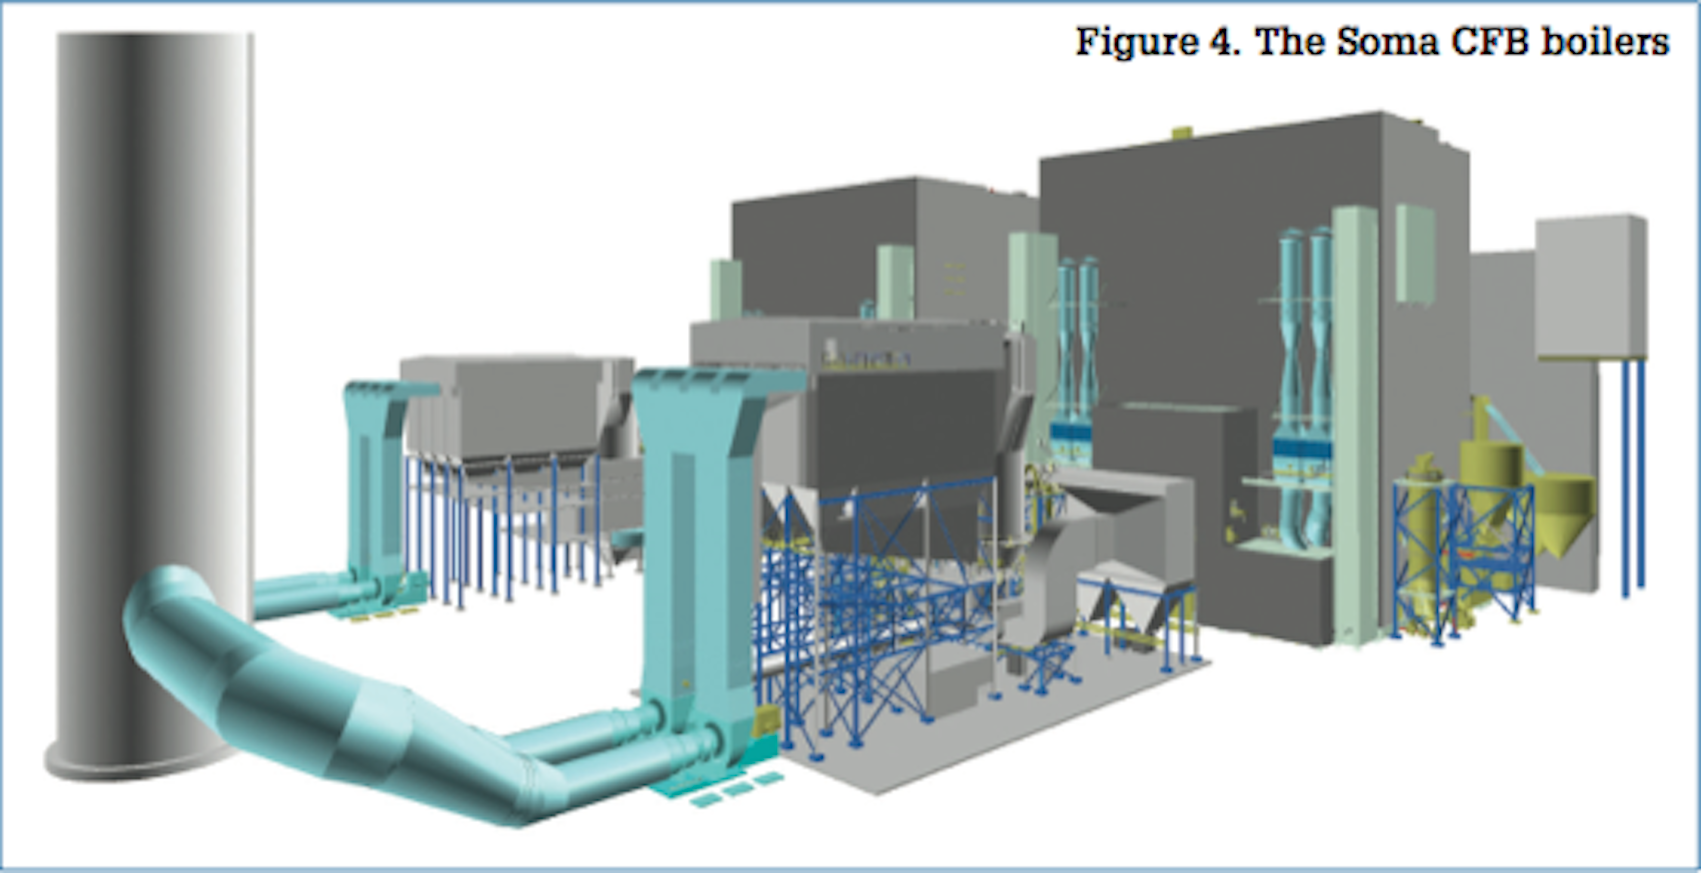 Figure 4. The Soma CFB boilers - Image - Modern Power Systems